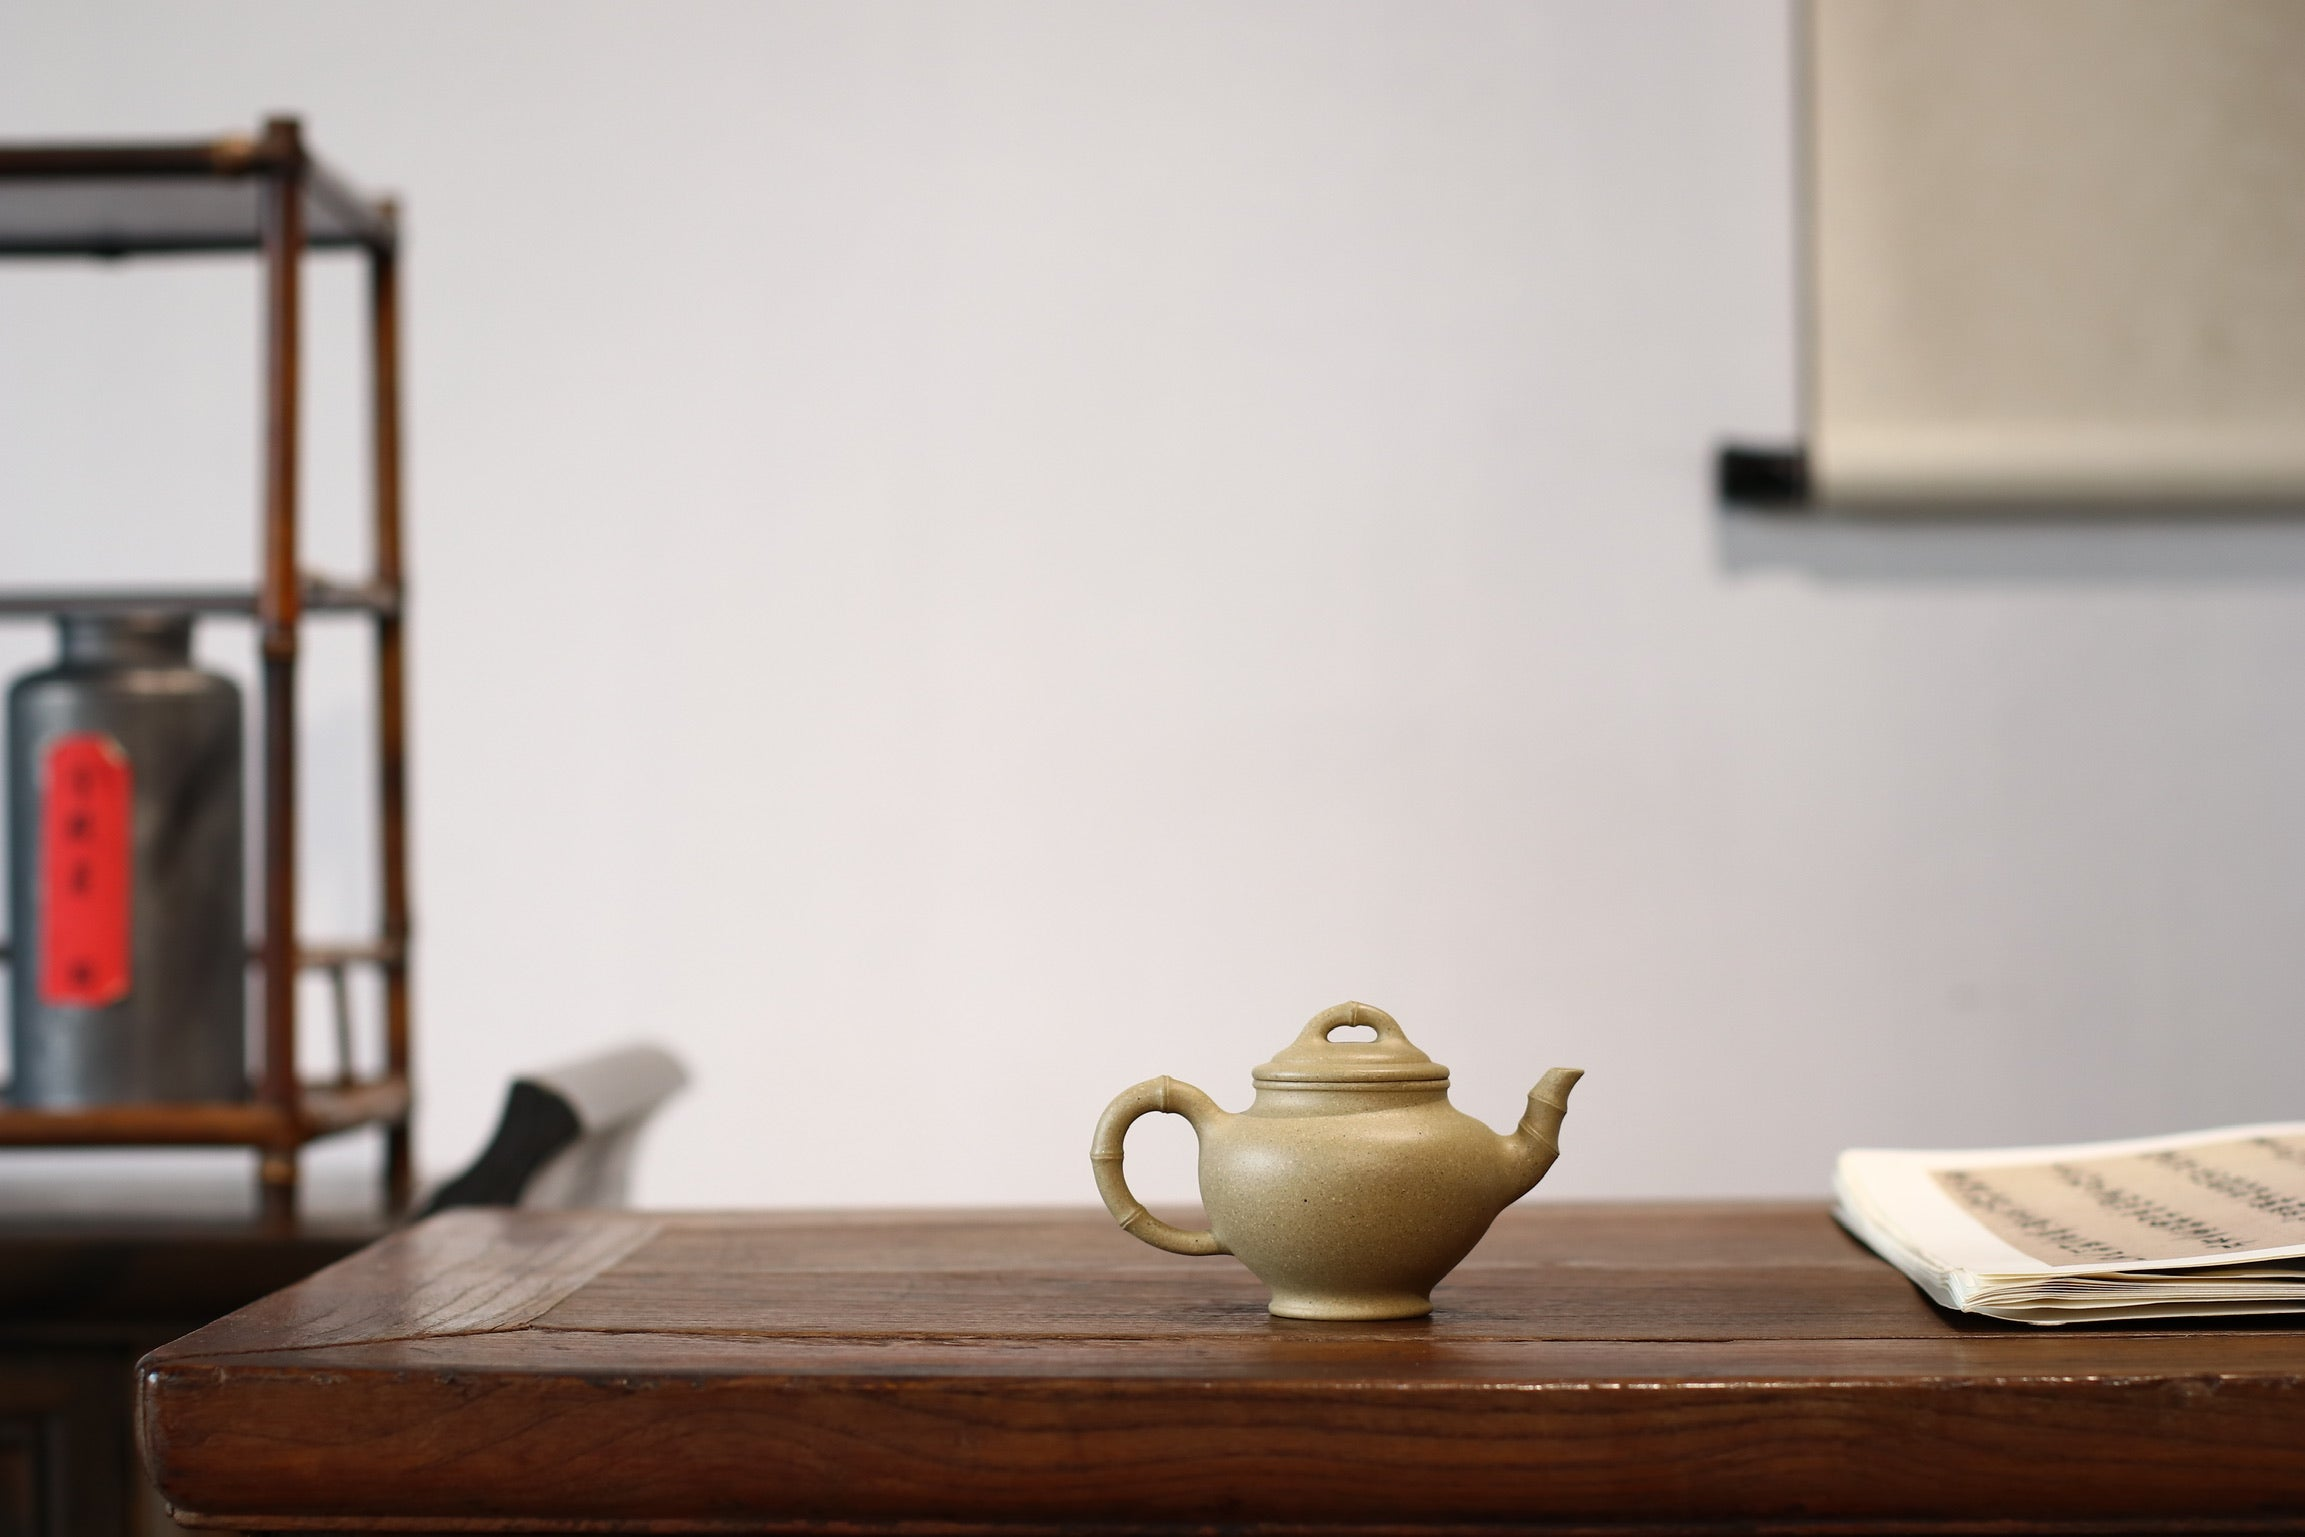 Bamboo Xiao Zhu Chun Hu 小竹春  Aged Ben Shan Lv 沈叶琴 - The Phans Yixing Zisha Teapot